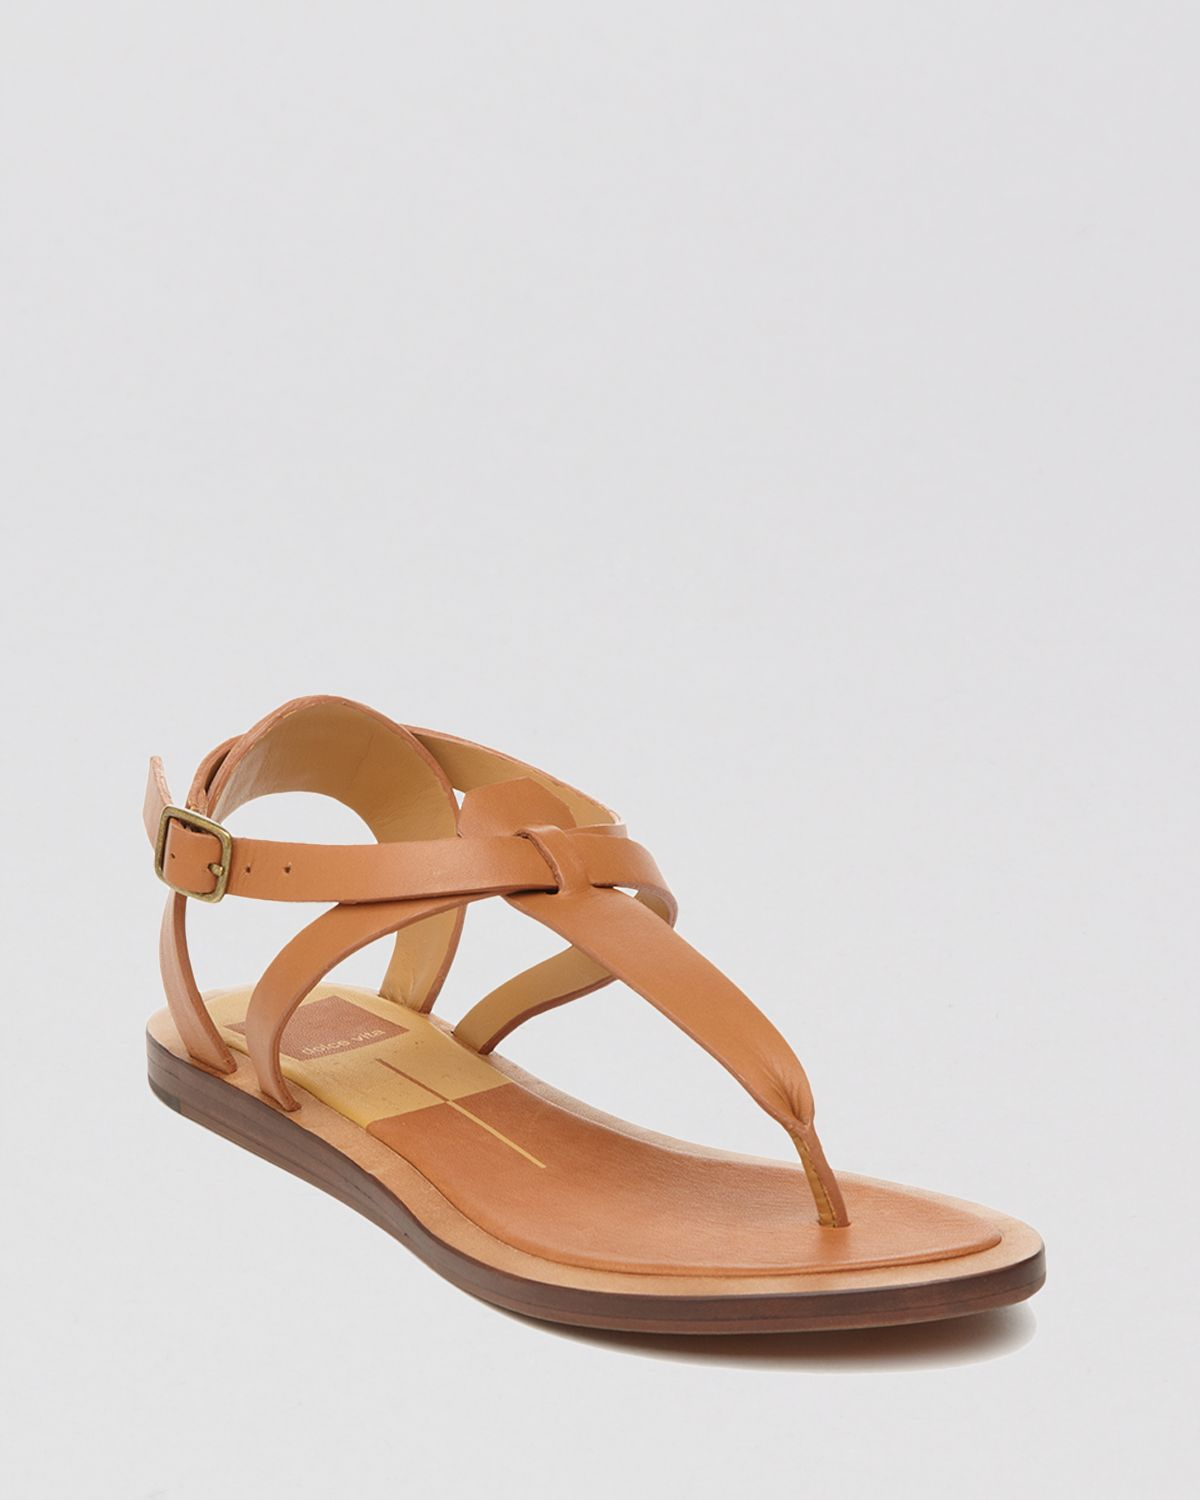 Lyst - Dolce Vita Flat Thong Sandals - Fabia in Brown